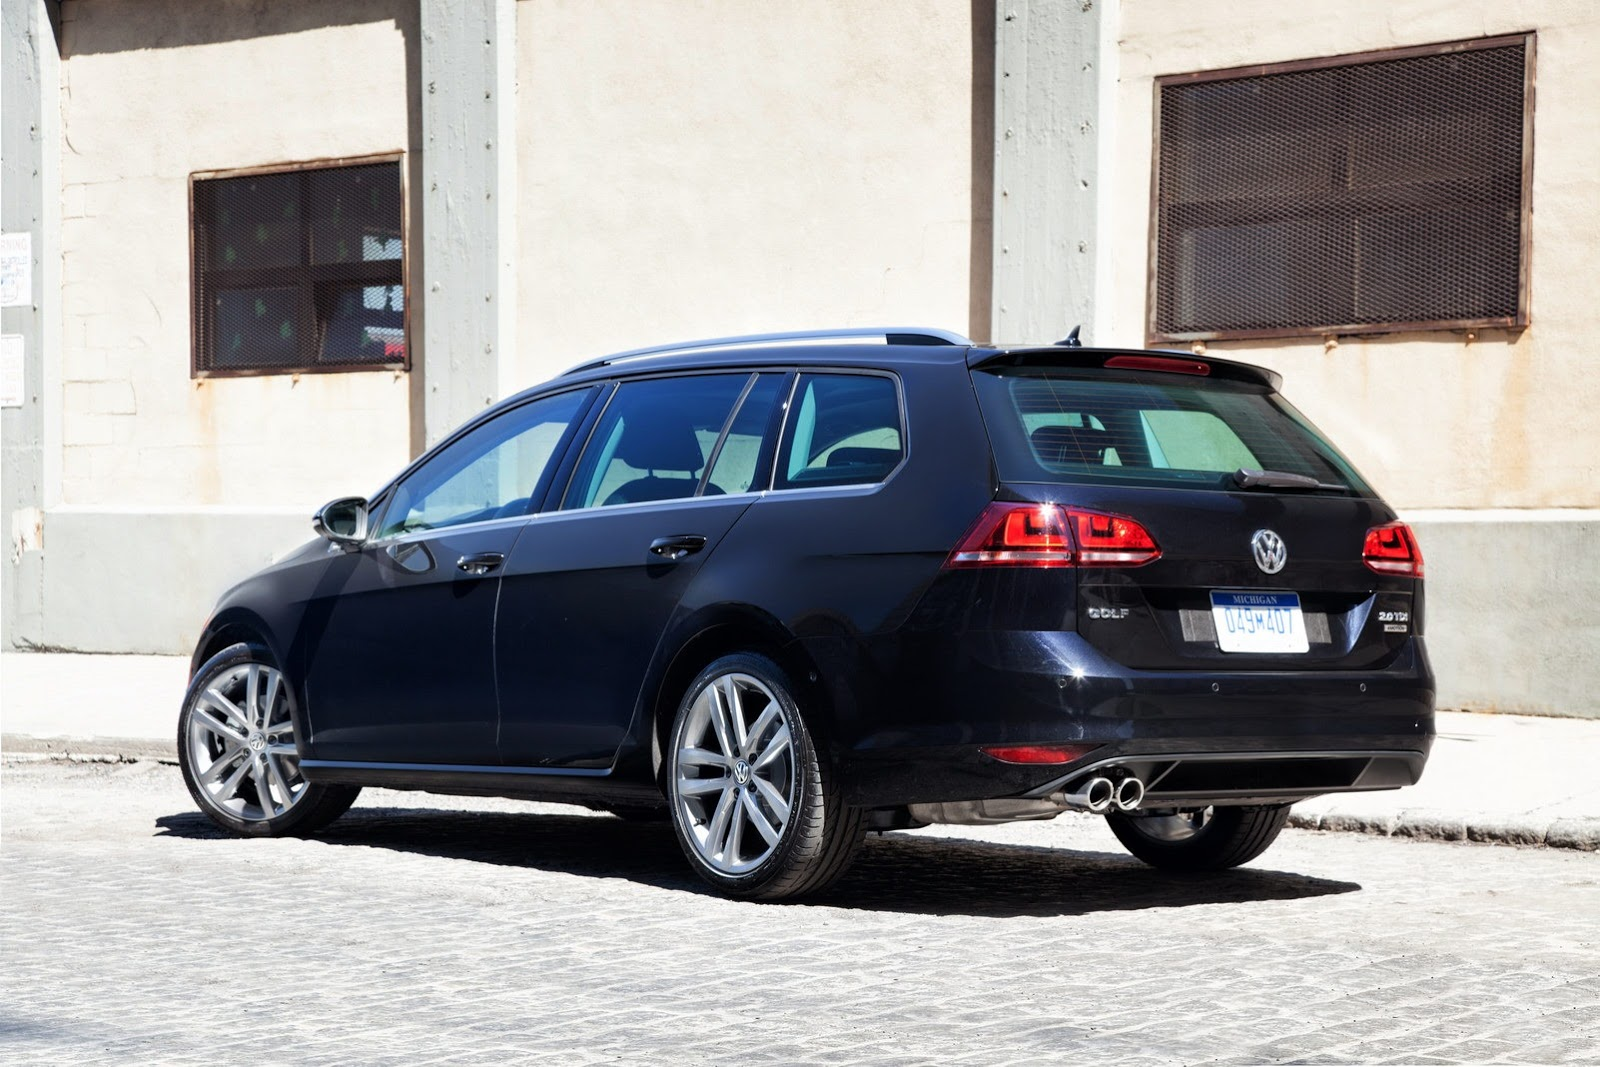 2015 Vw Golf Wagon Prices Start From 21 395 Autoevolution